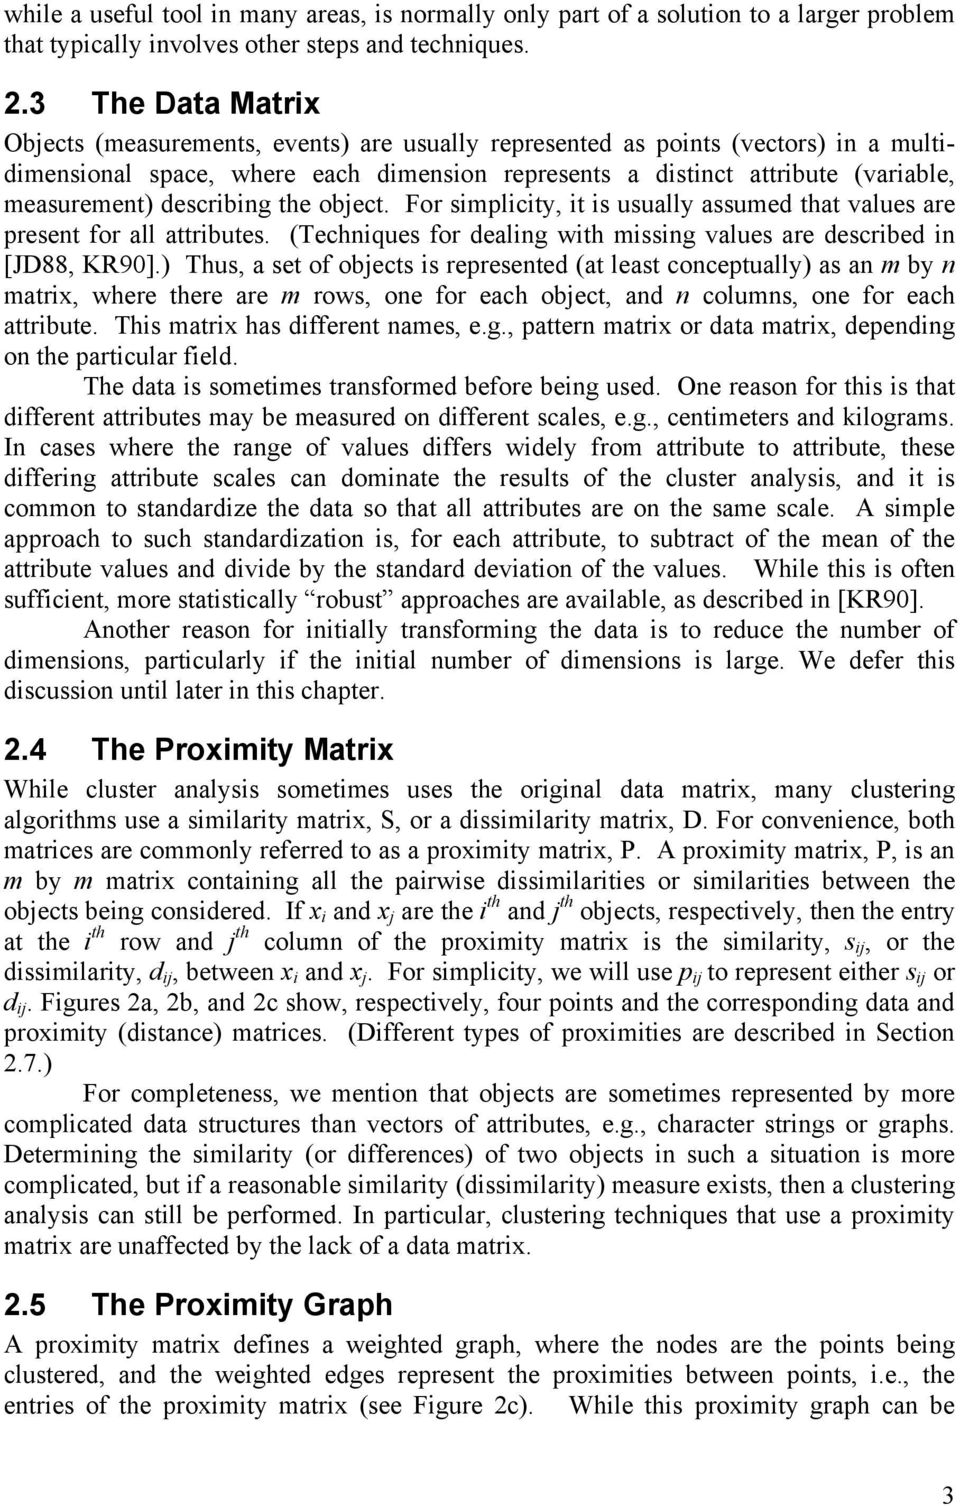 describing the object. For simplicity, it is usually assumed that values are present for all attributes. (Techniques for dealing with missing values are described in [JD88, KR90].